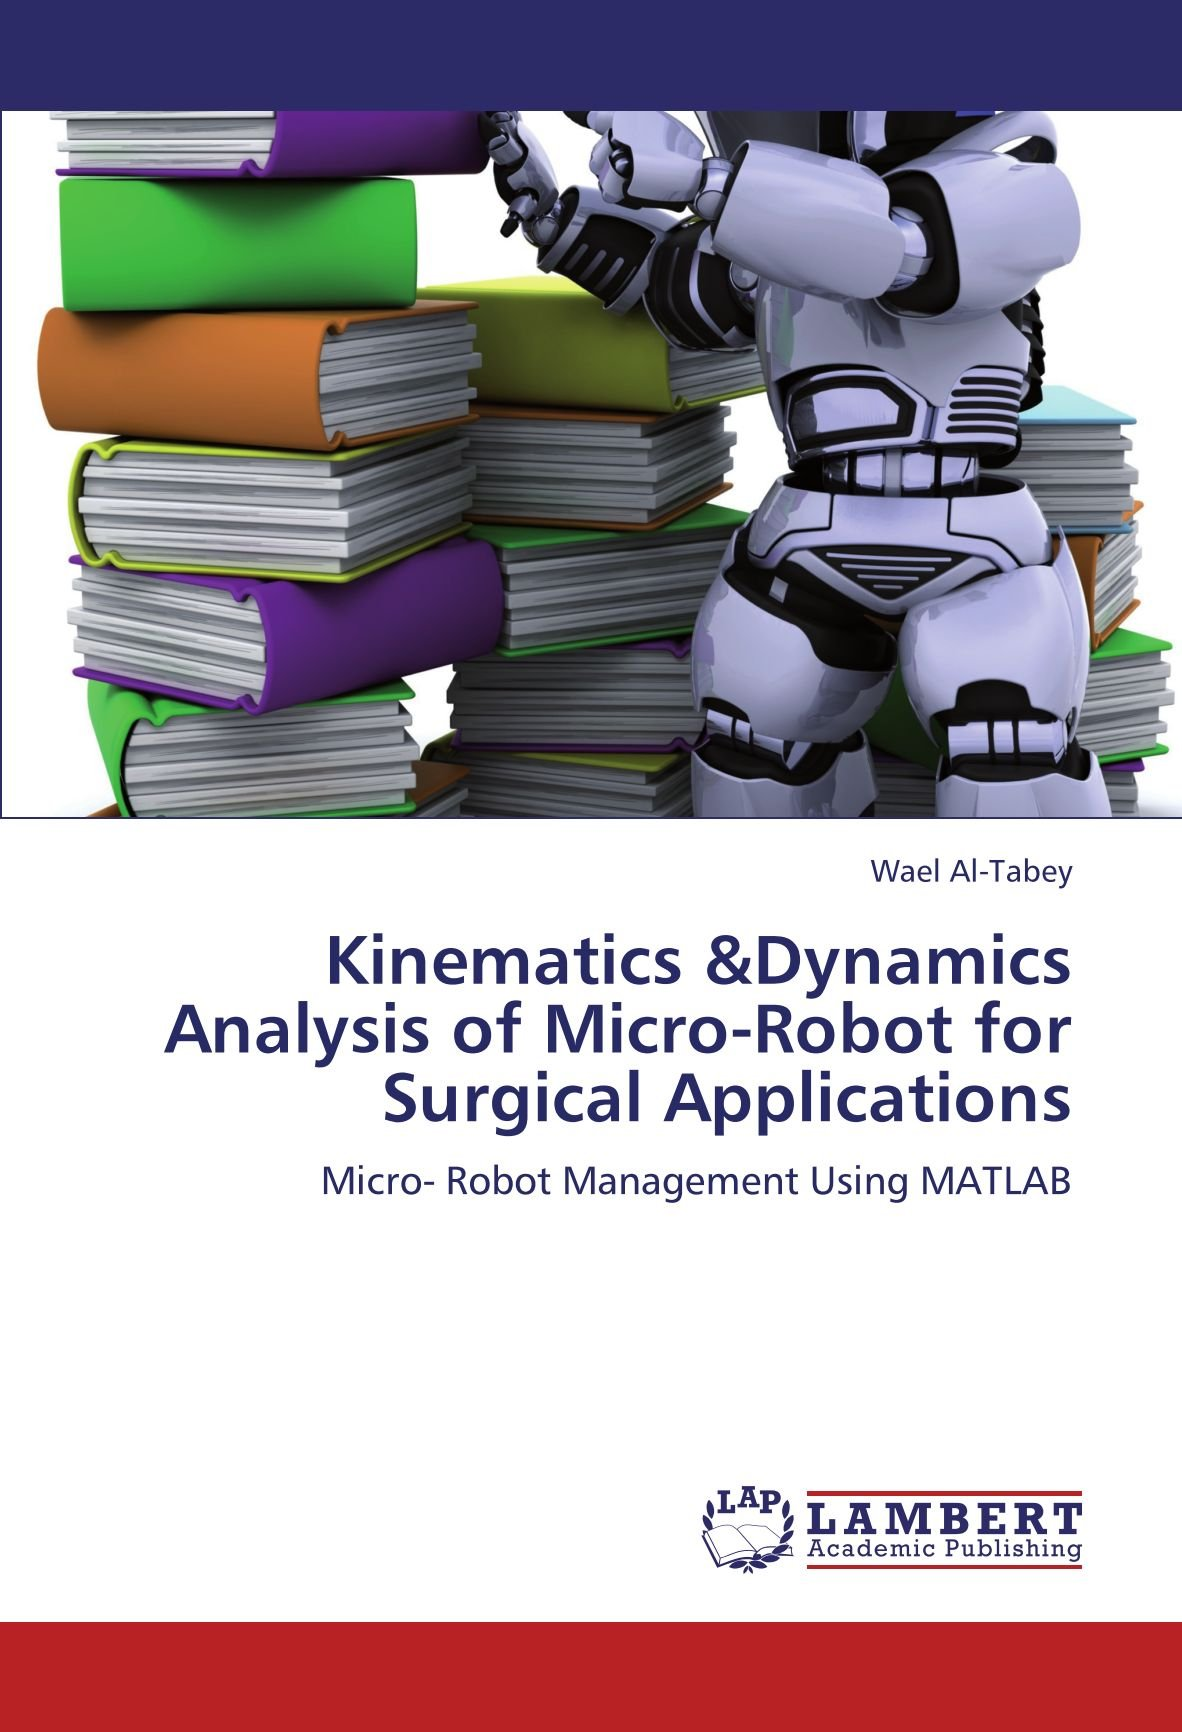 Kinematics &Dynamics Analysis of Micro-Robot for Surgical Applications: Micro- Robot Management Using MATLAB by Wael Al Tabey